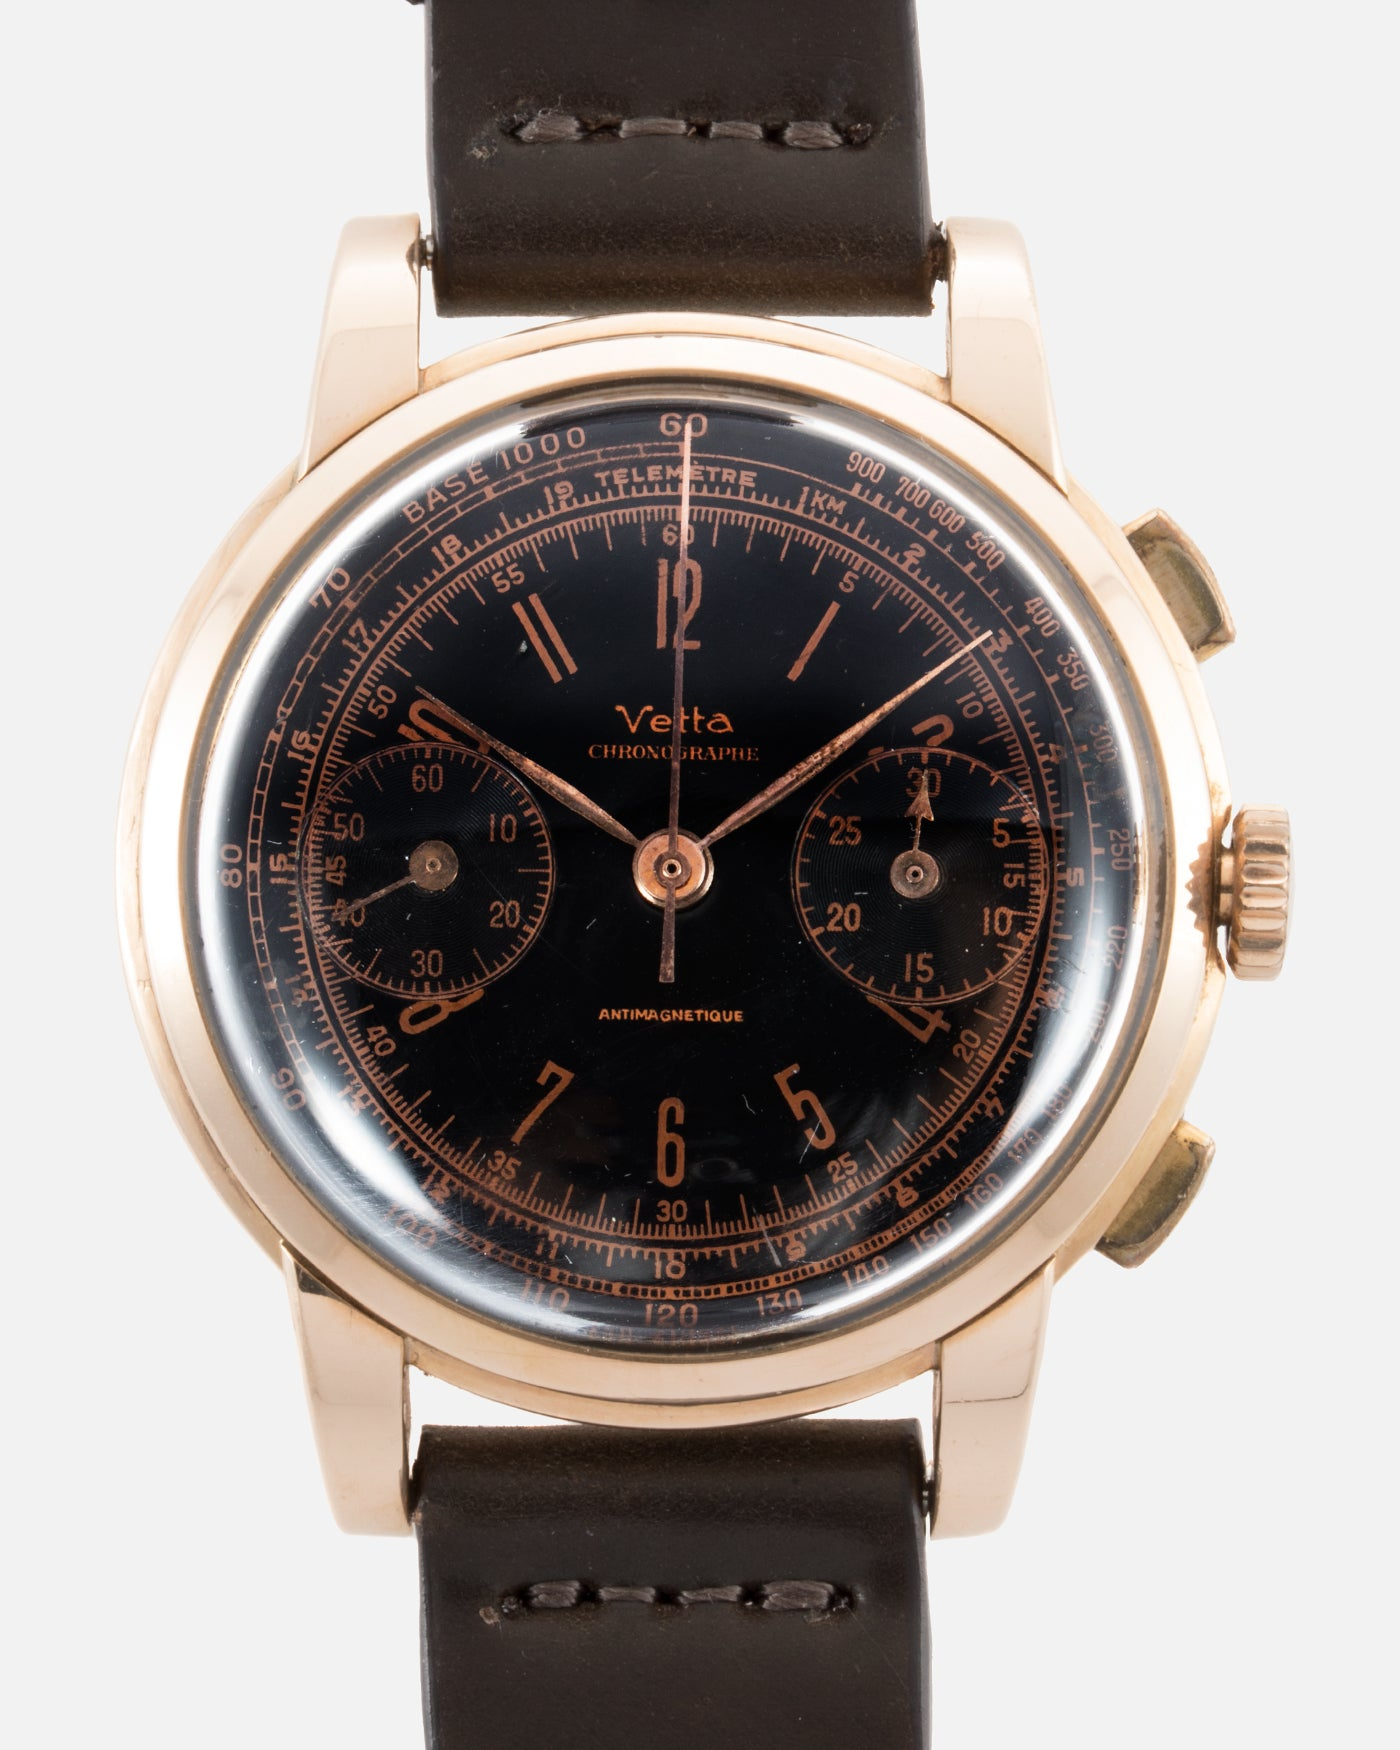 Vetta Antimagnetique 40mm Oversized Chronograph